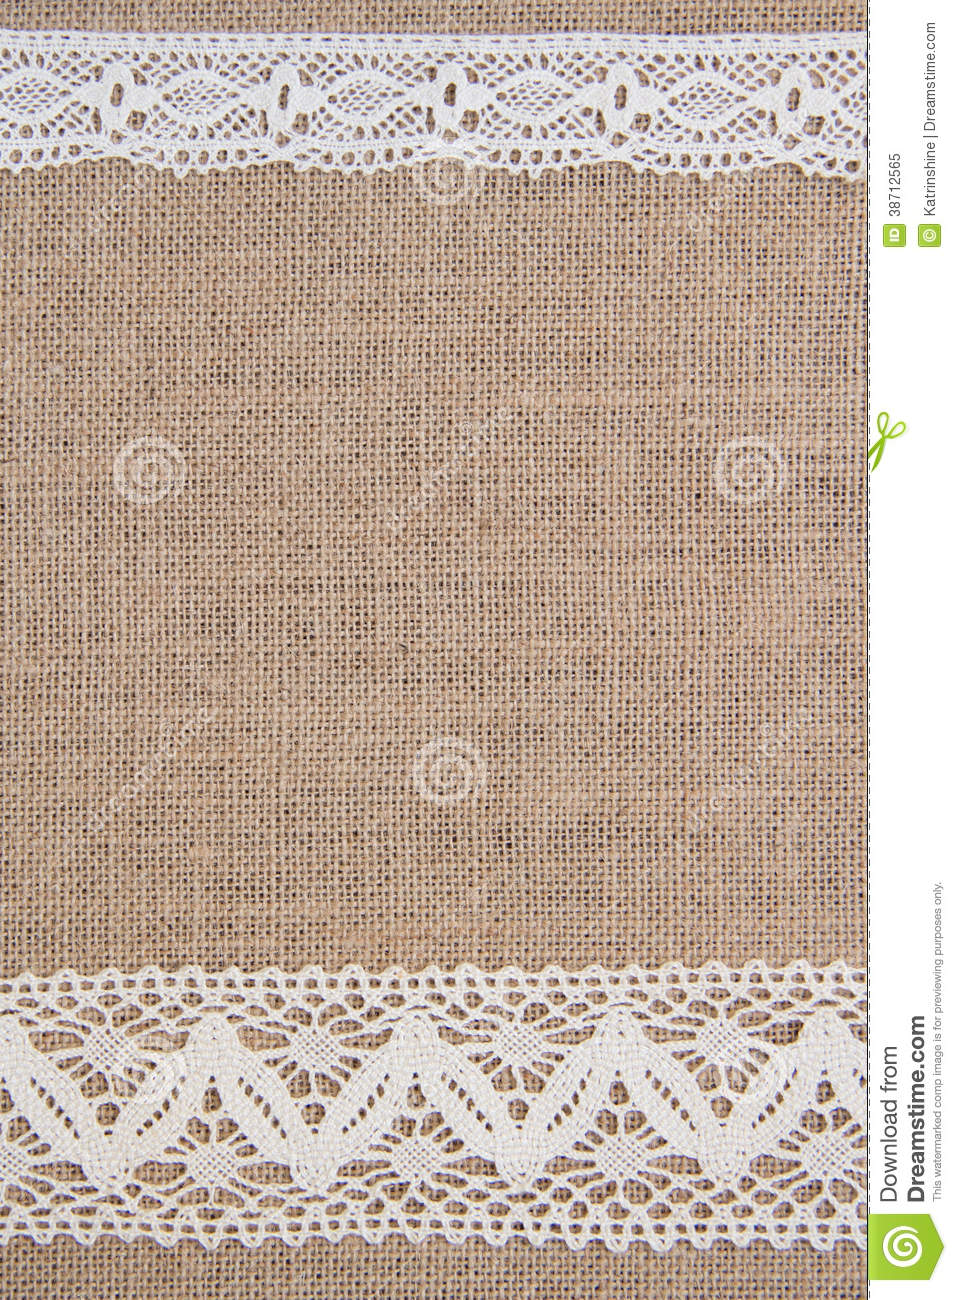 Burlap Background With Lace Royalty Free Stock Photo   Image  38712565